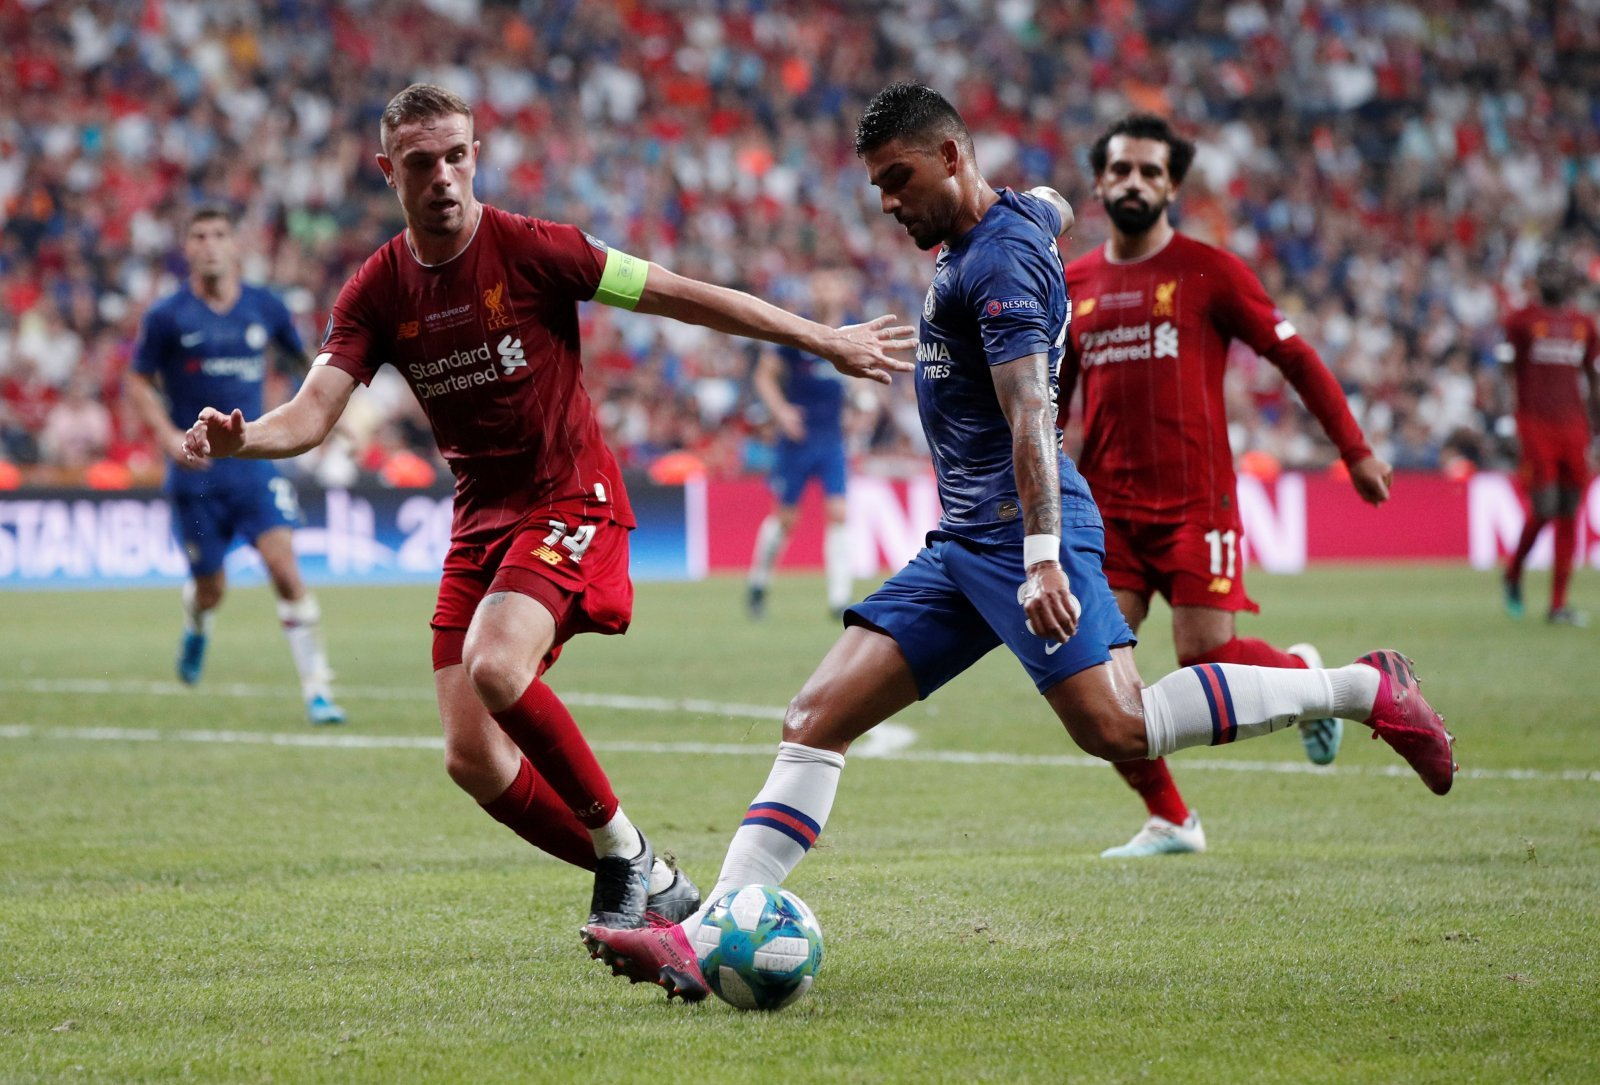 Chelsea: Many fans frustrated by update on Emerson Palmieri's injury